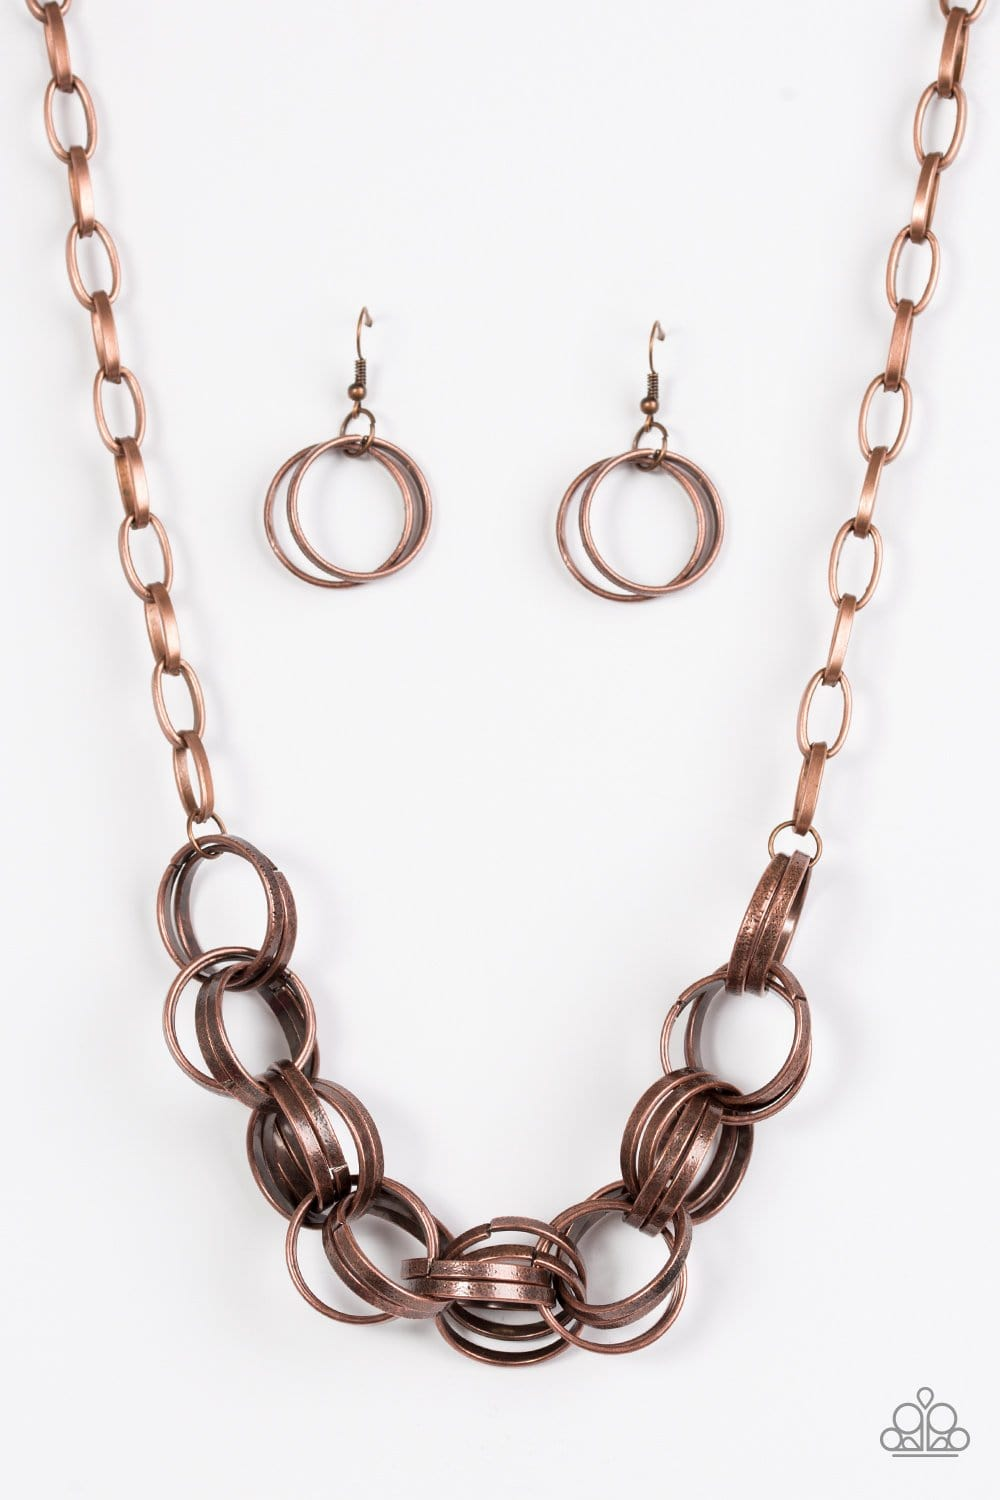 Statement Made - Copper - Jewels N' Thingz Boutique